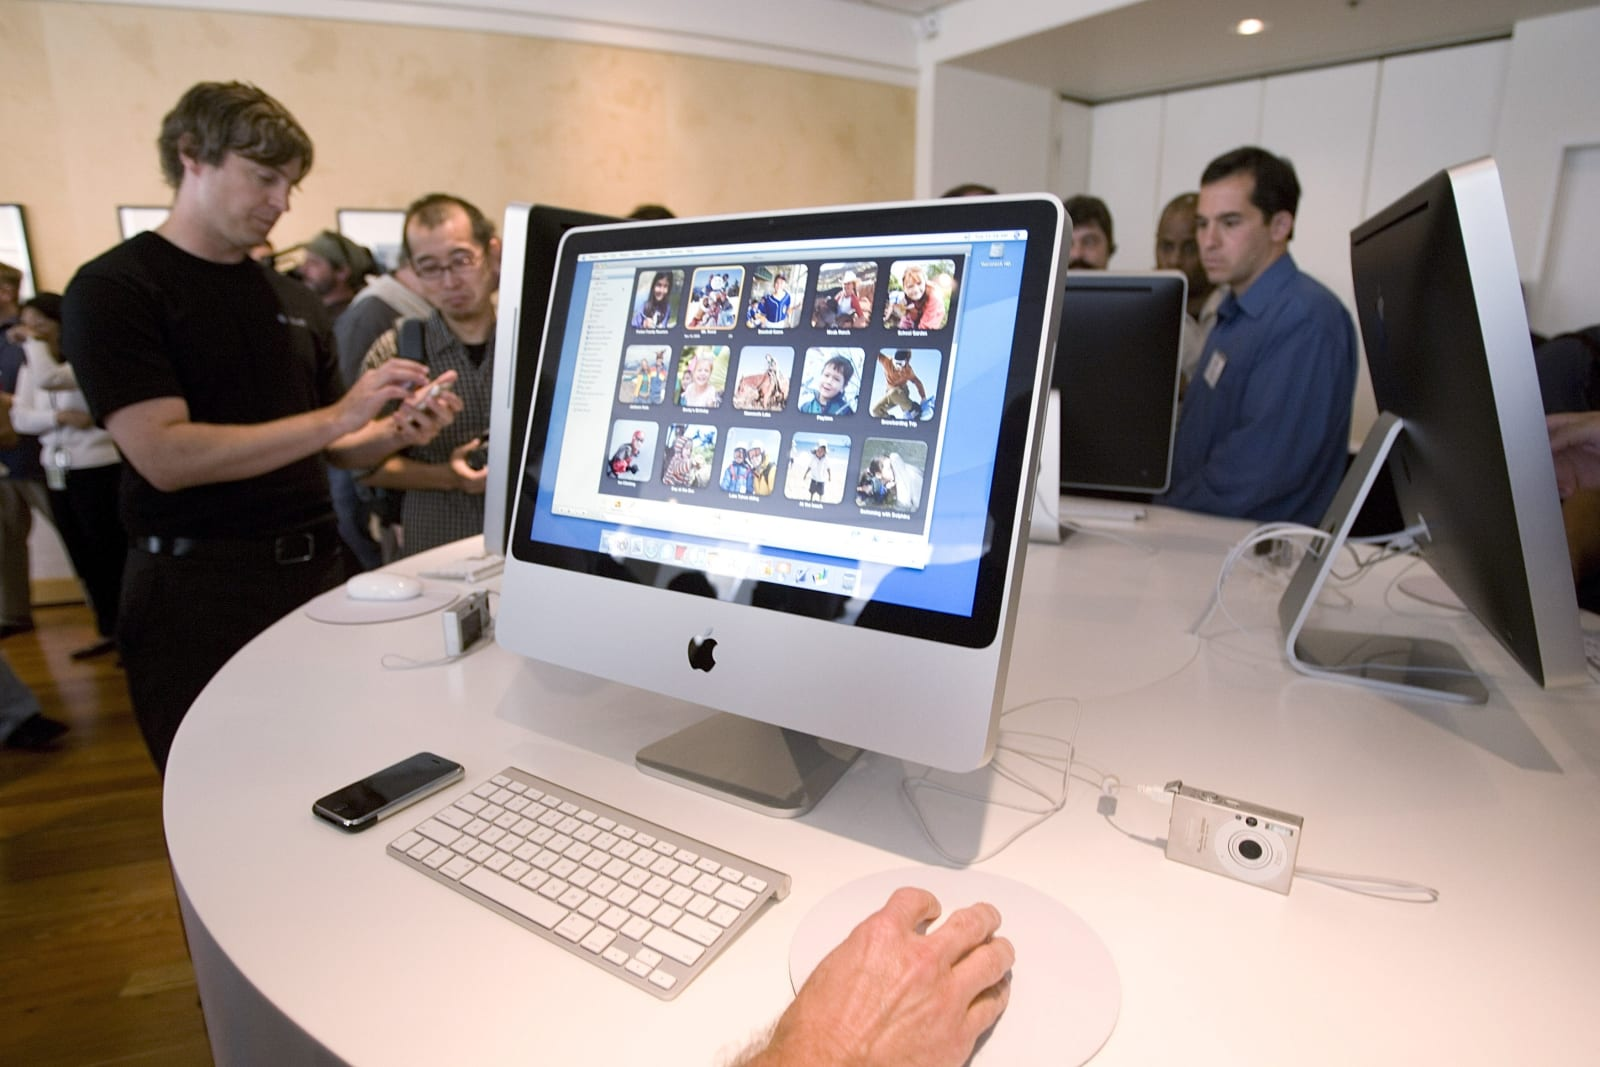 Apple Introduces New Versions Of The iMac Computer And  iLife Applications